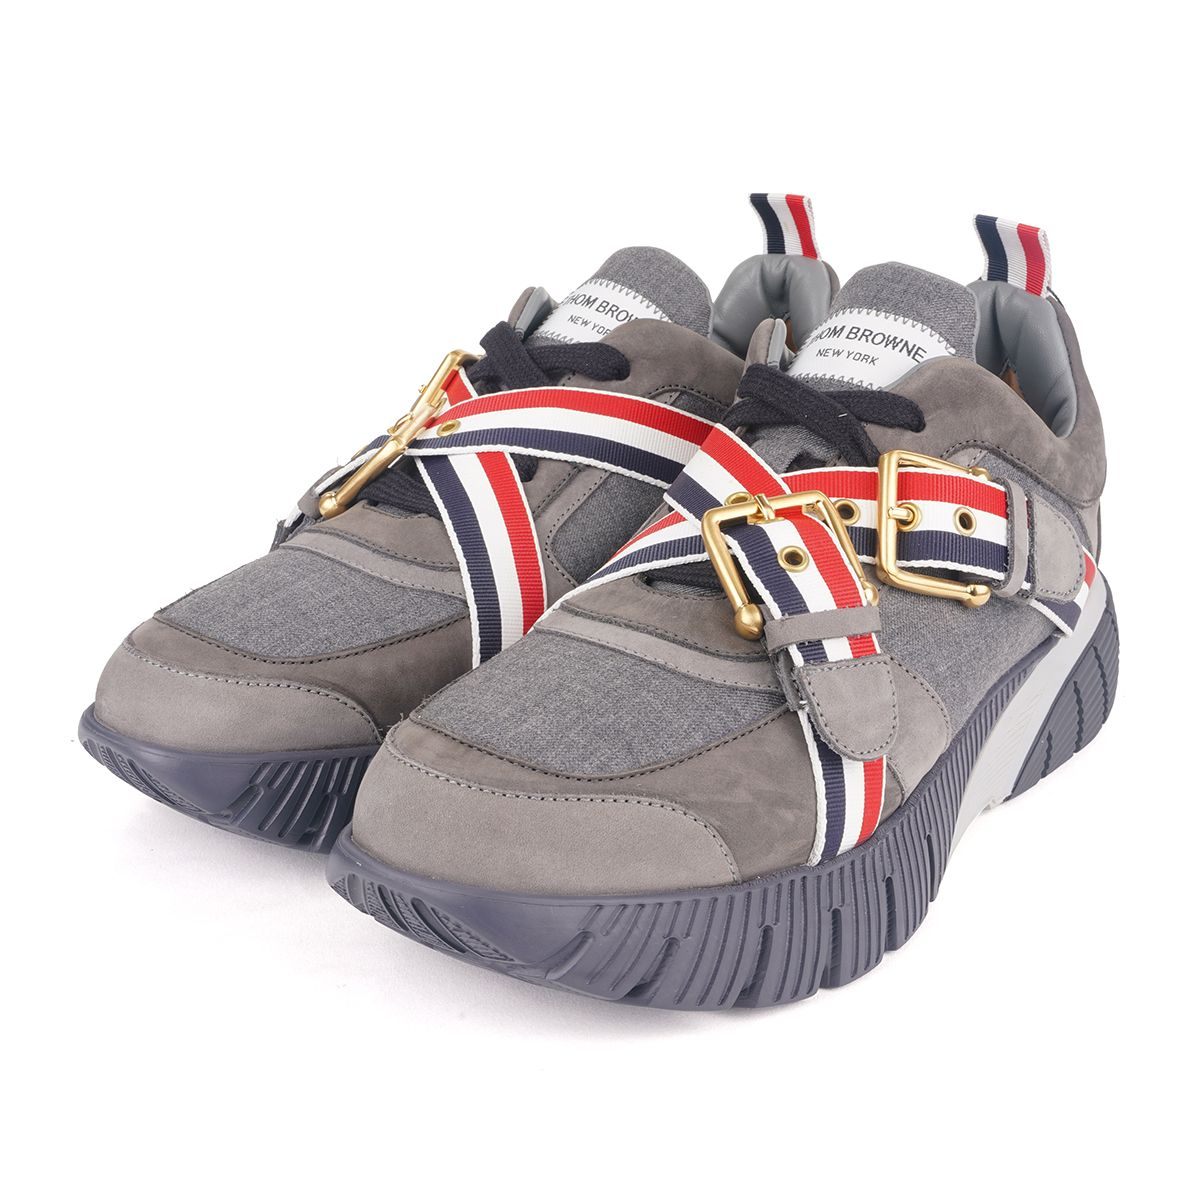 [お問い合わせ商品] THOM BROWNE. RAISED RUNNING SHOE W/ RWB WEBBING STRAPS & GREY FLEX RUBBER SOLE IN SUPER 120'S TWILL / 035 : MED GREY